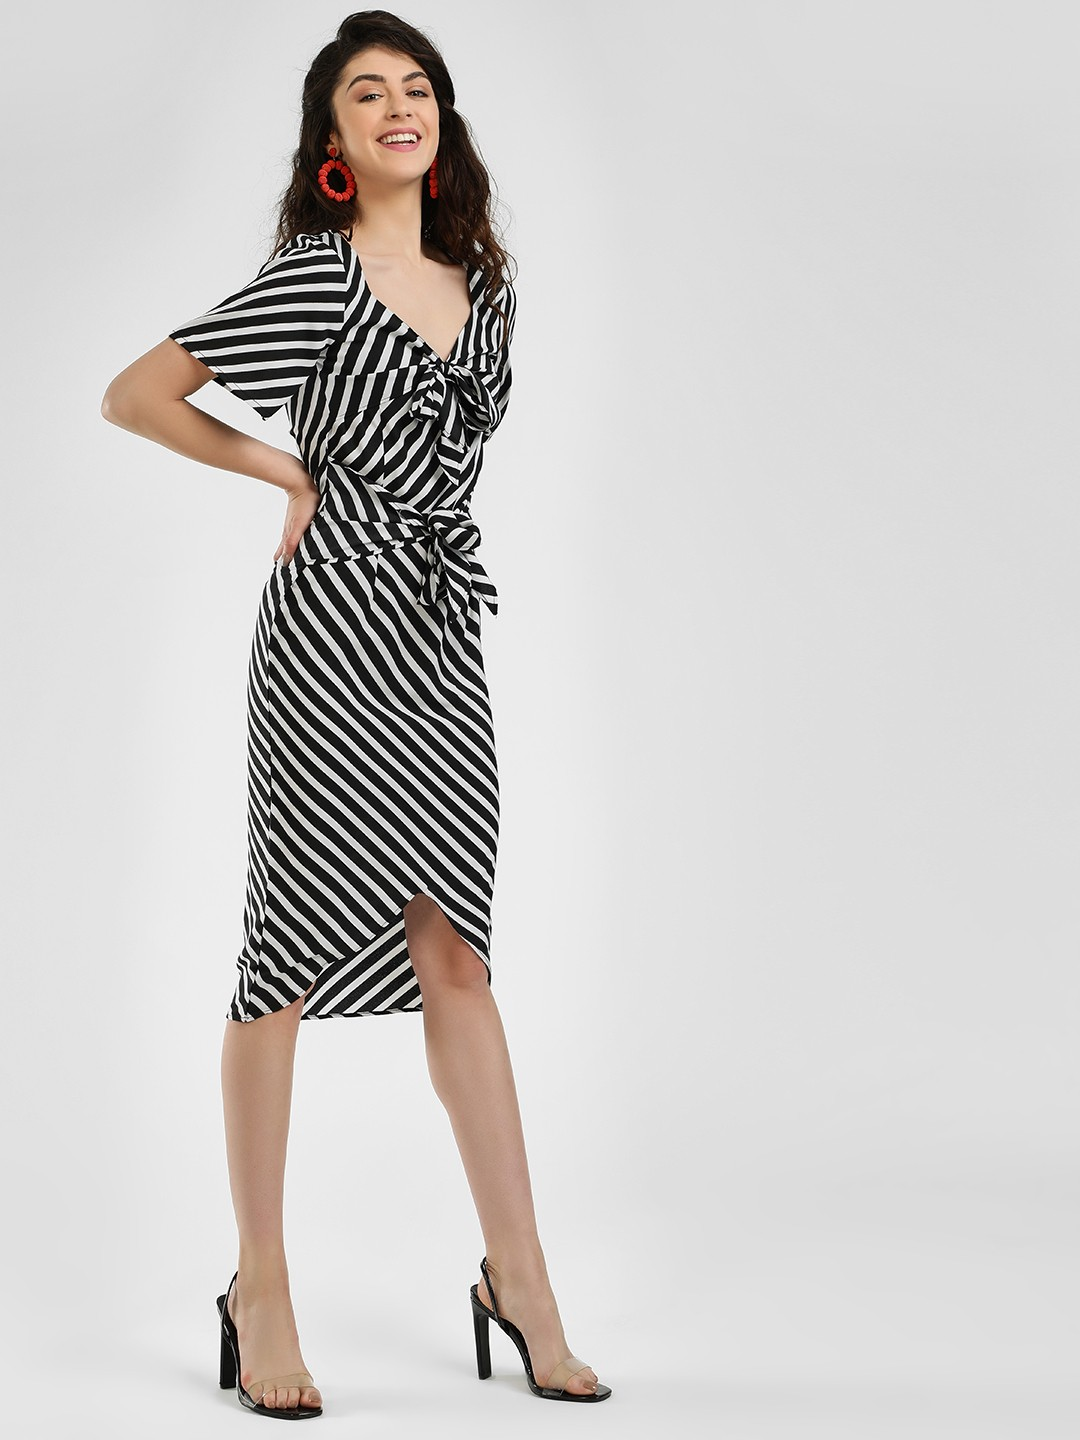 Closet Drama Print Double Knot Stripe Asymmetric Dress 1